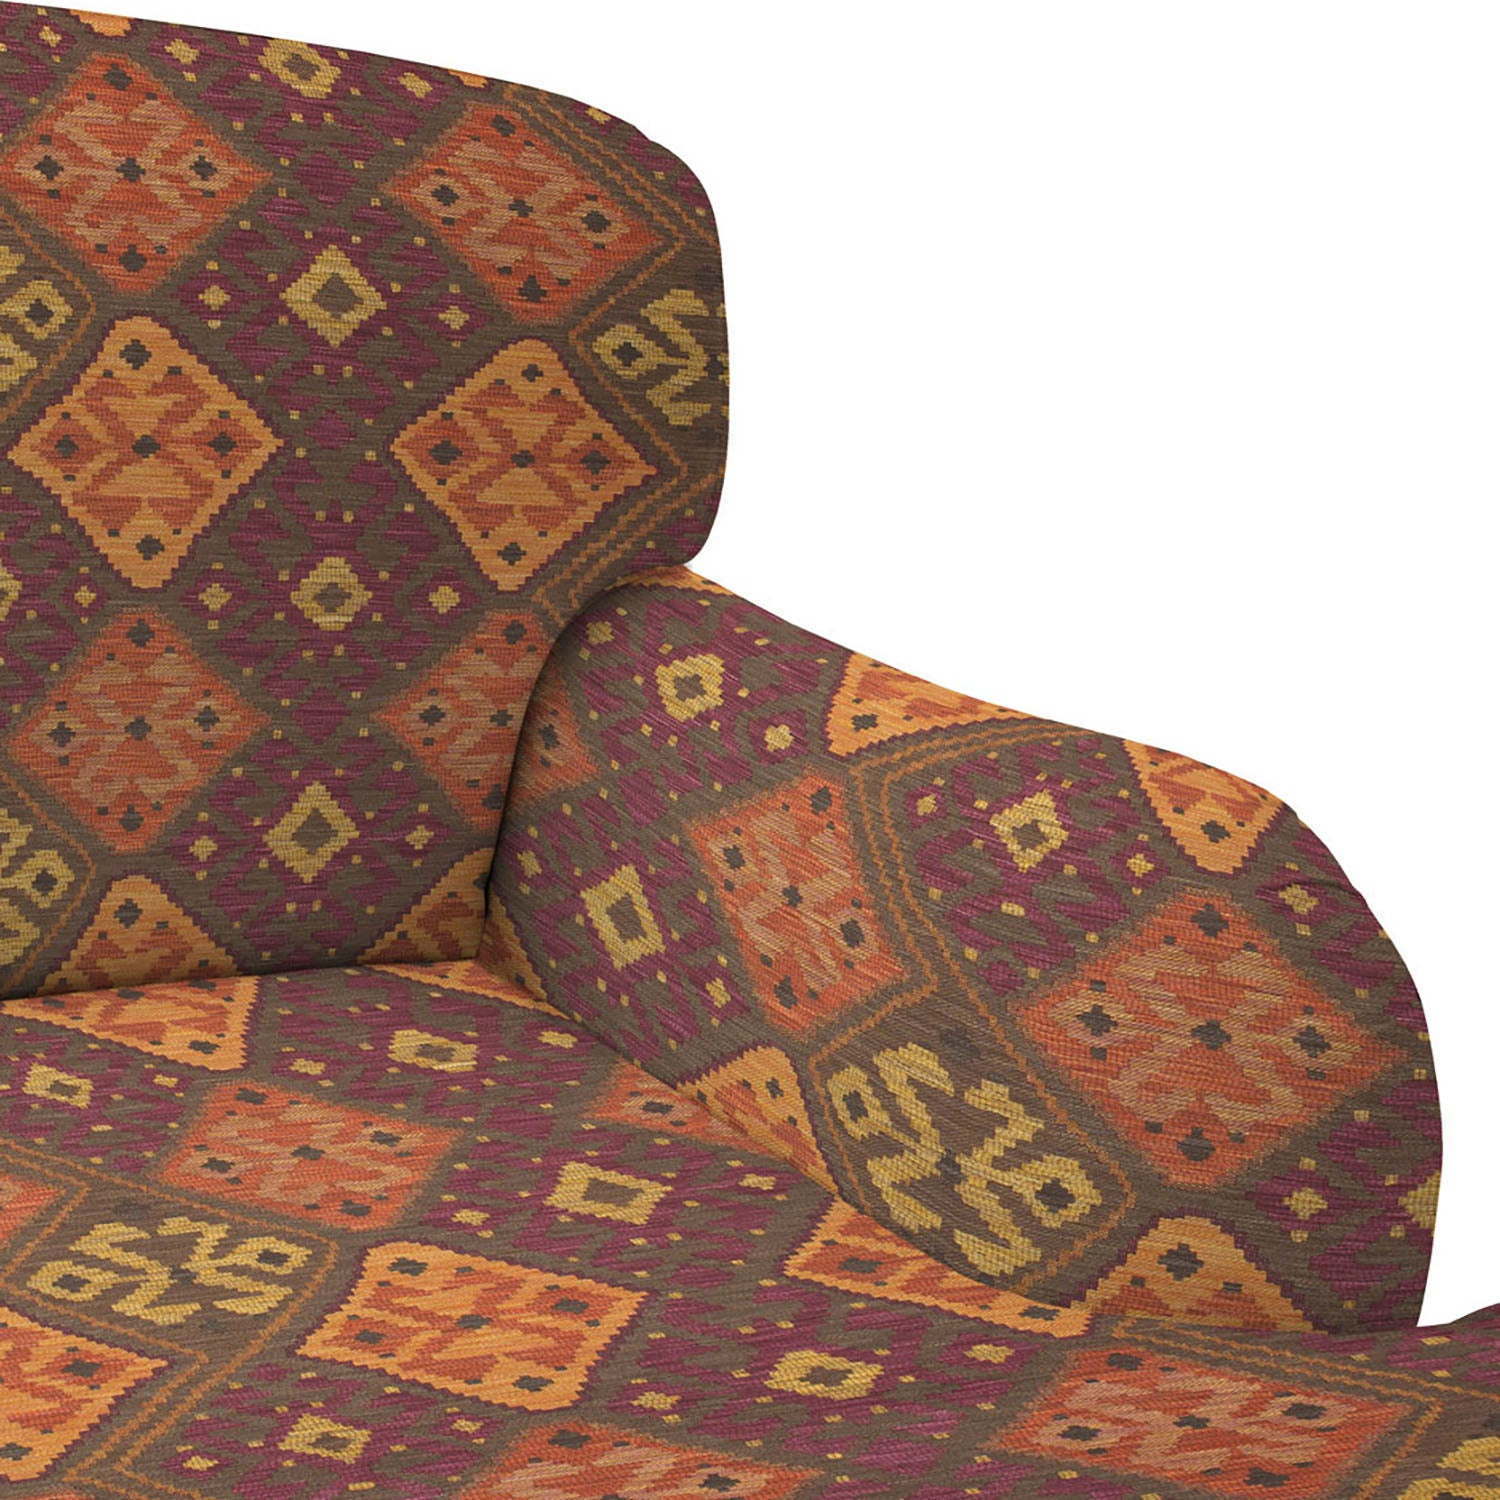 Chair upholstered in a dark berry, terracotta and neutral coloured Kilim upholstery fabric